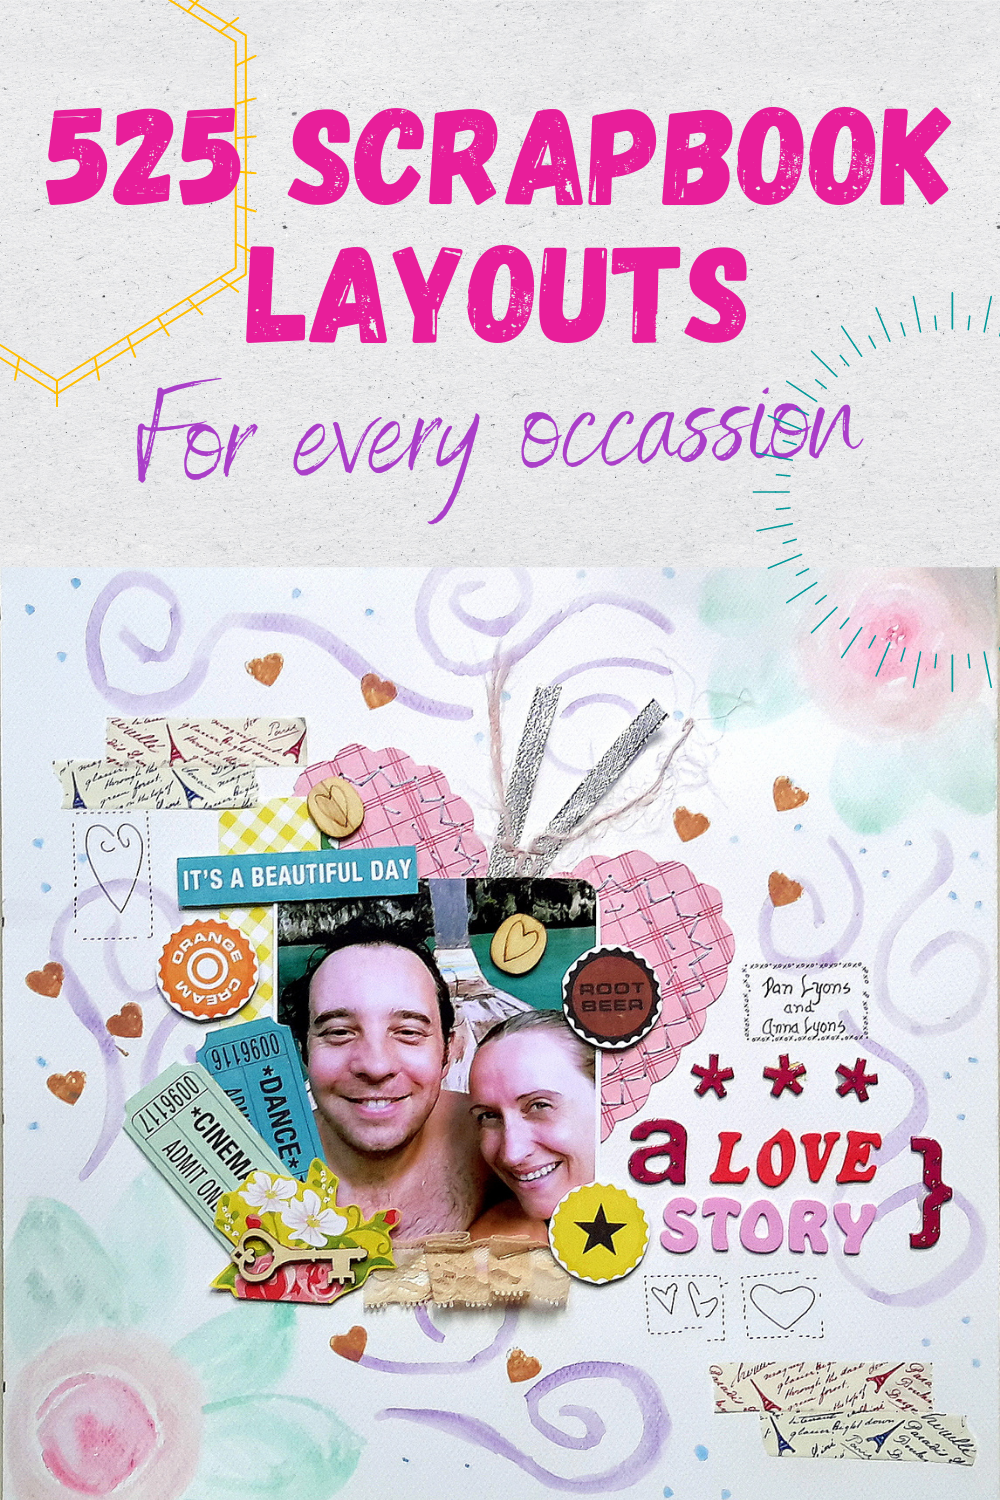 525 scrapbooking layouts for beginners. Start your next scrapbooking project with more options than you can handle.